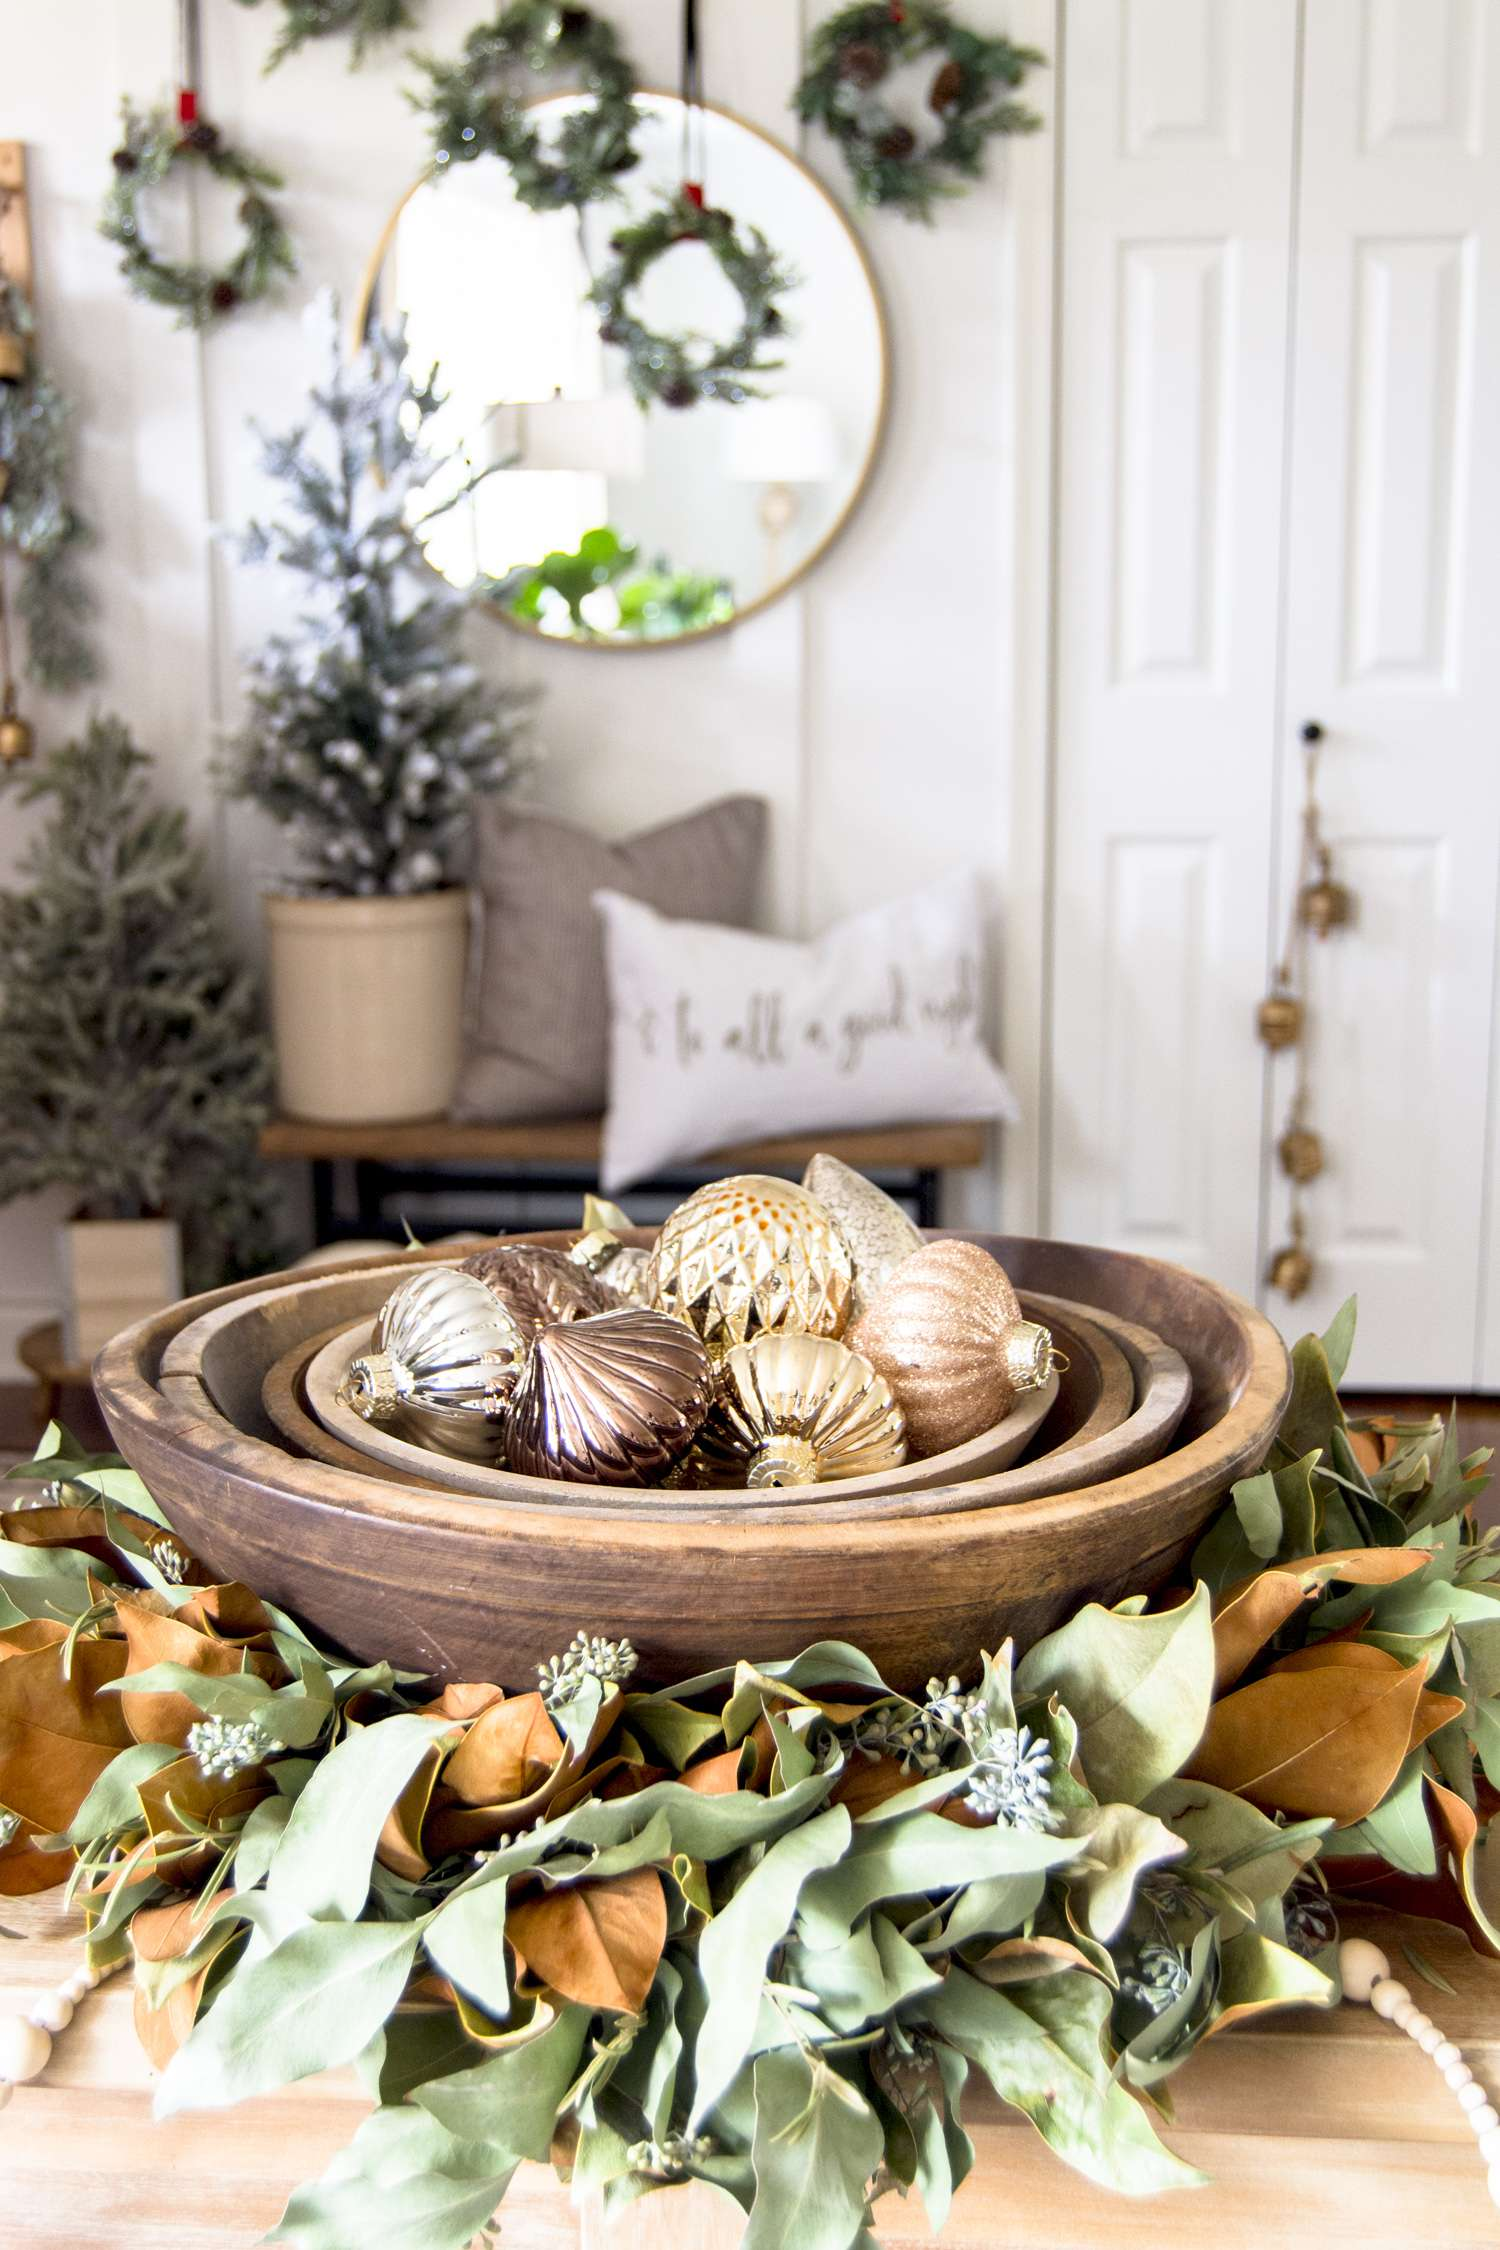 Glass Christmas ornaments in a vintage wood bowl.